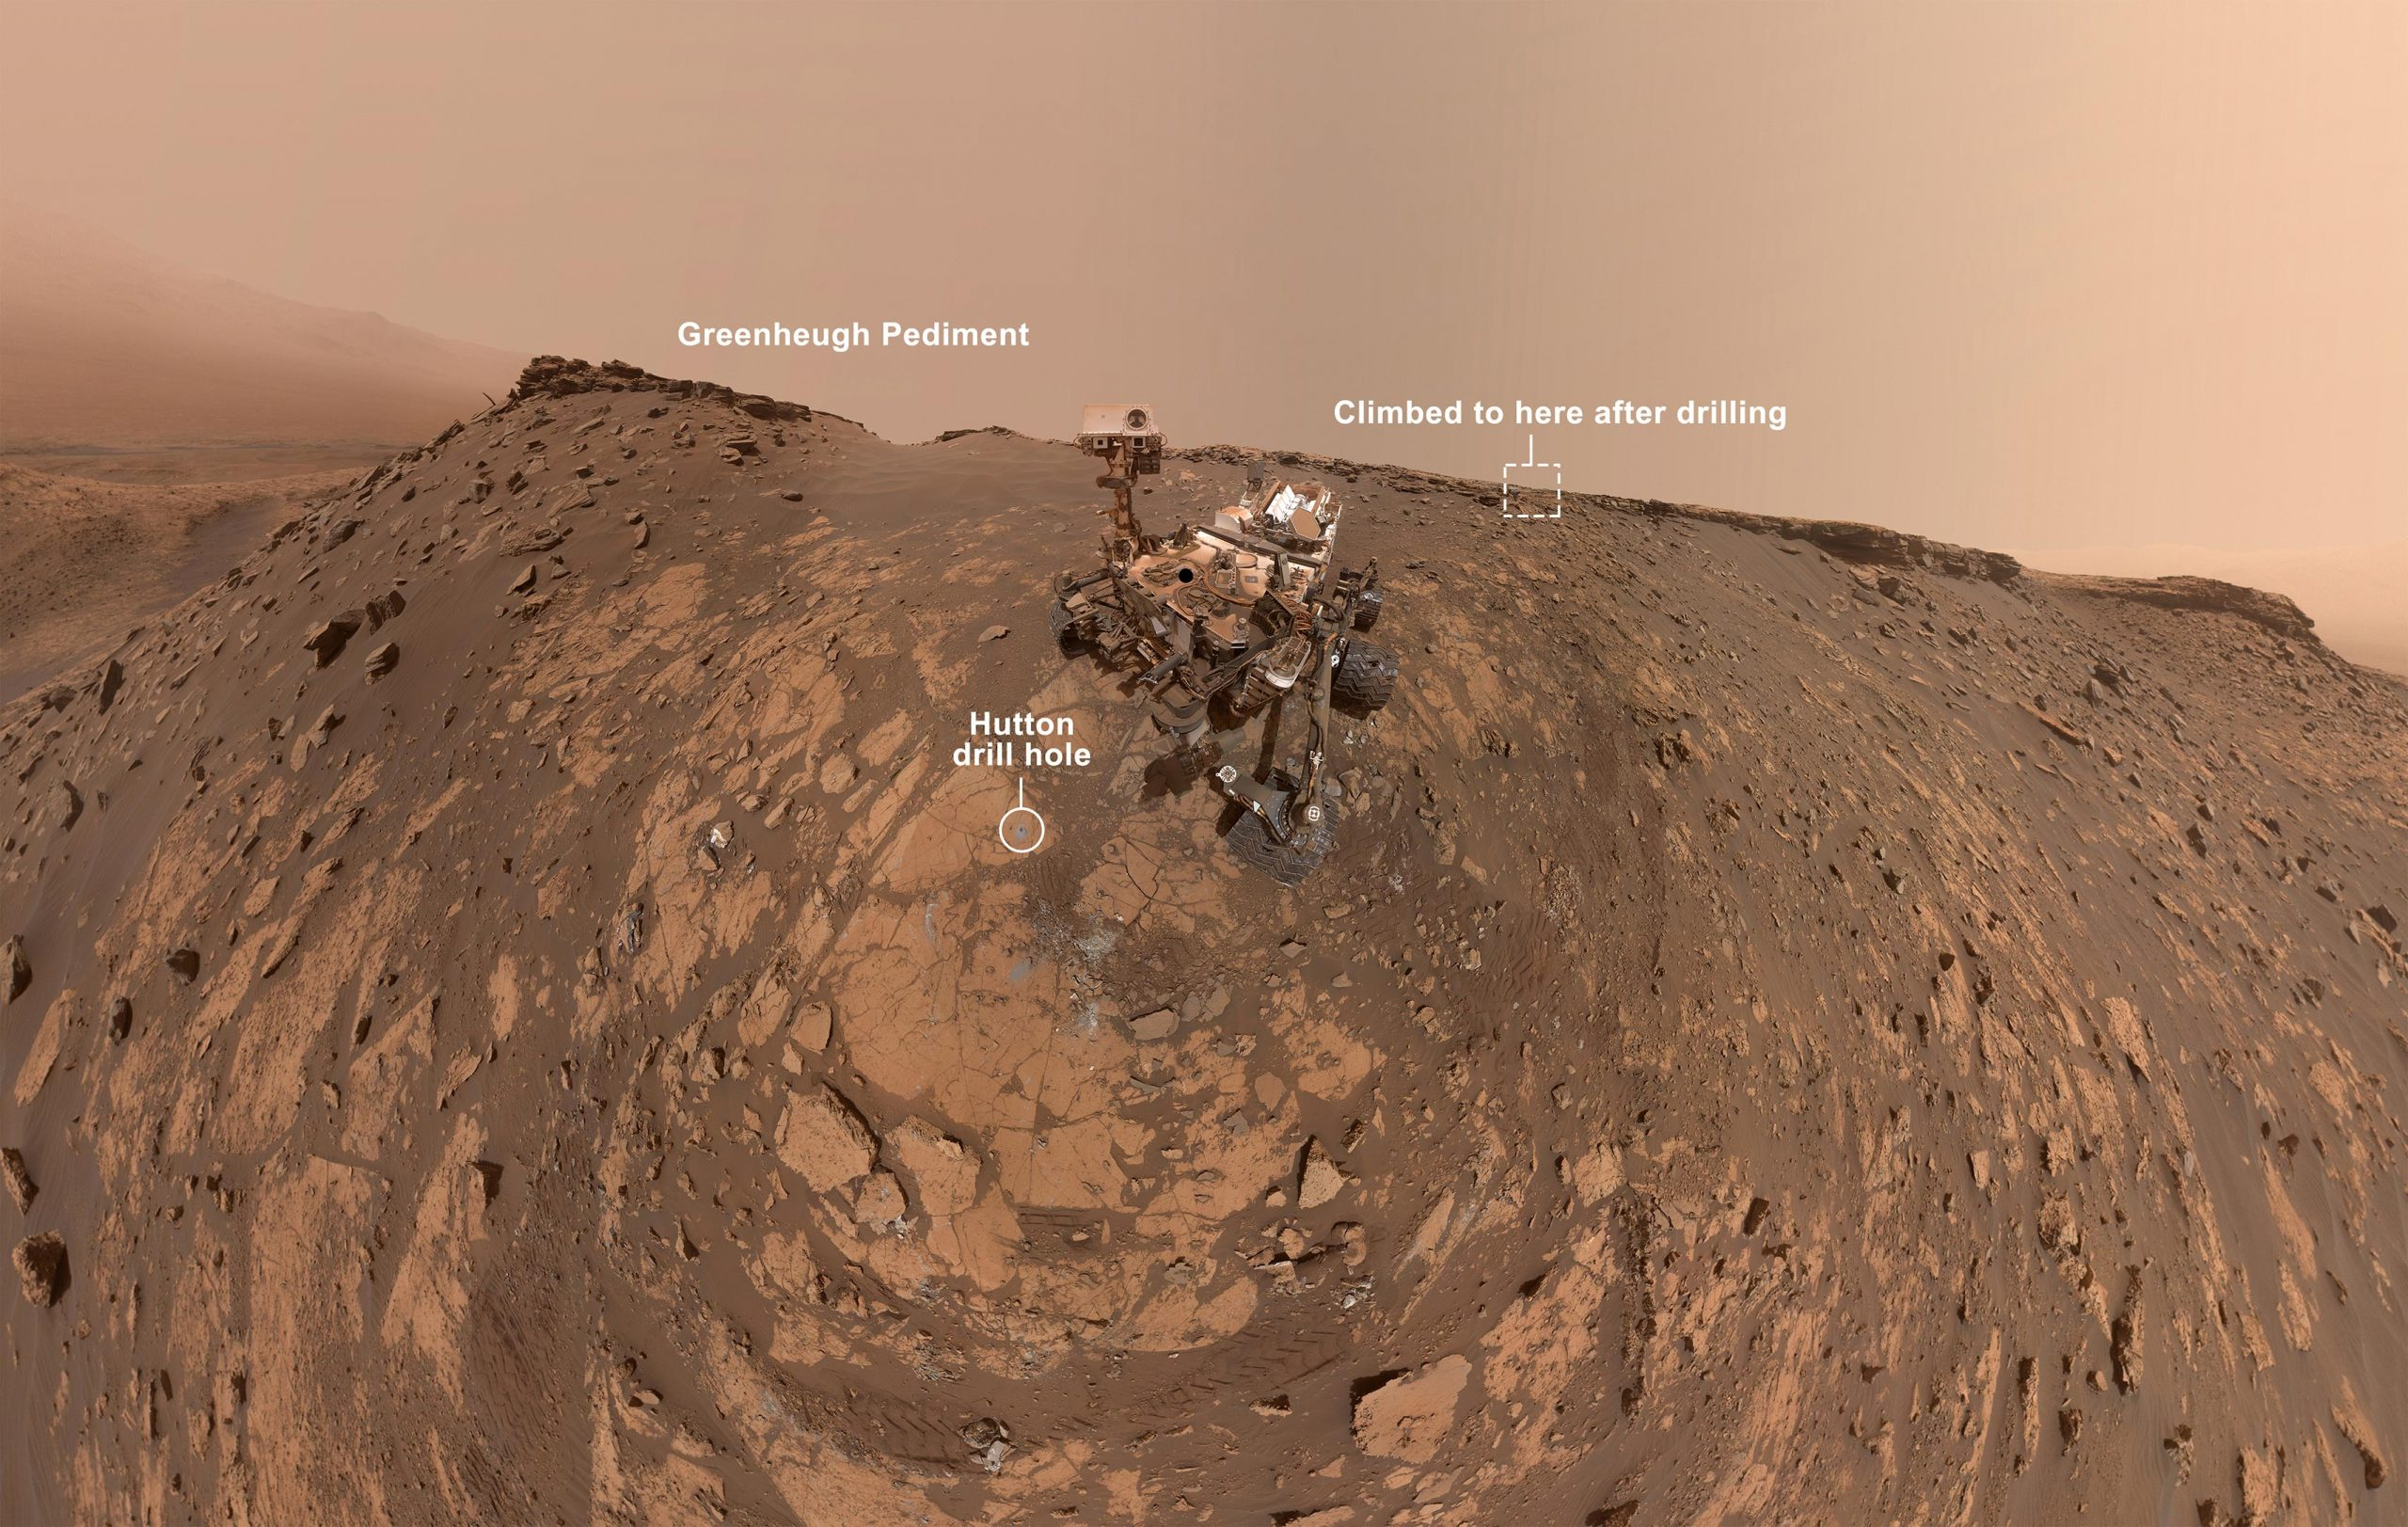 Curiosity Mars rover takes selfie during record climb